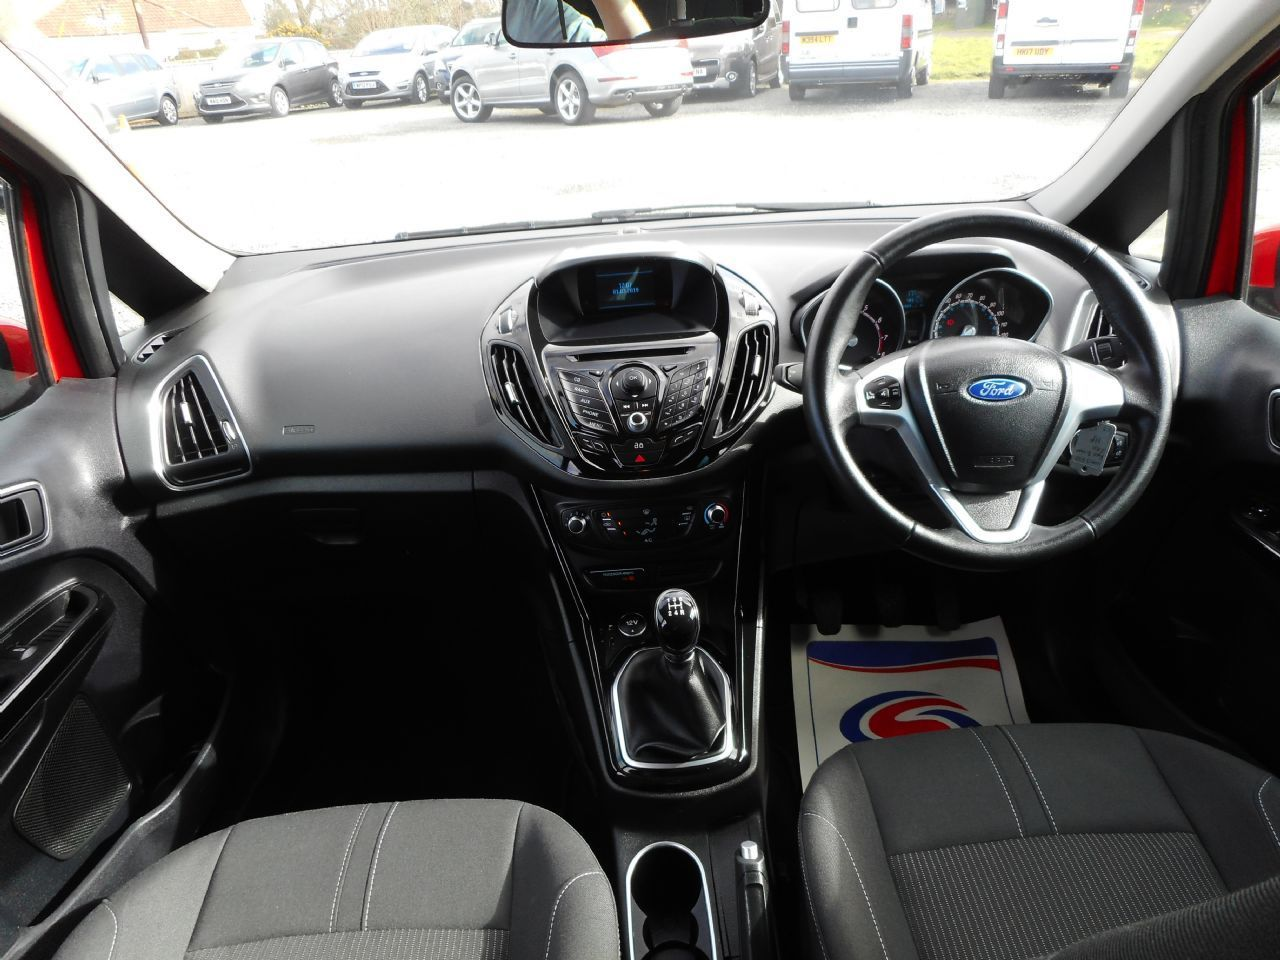 FORD B-MAX 1.4 90PS Zetec (2013) - Picture 10